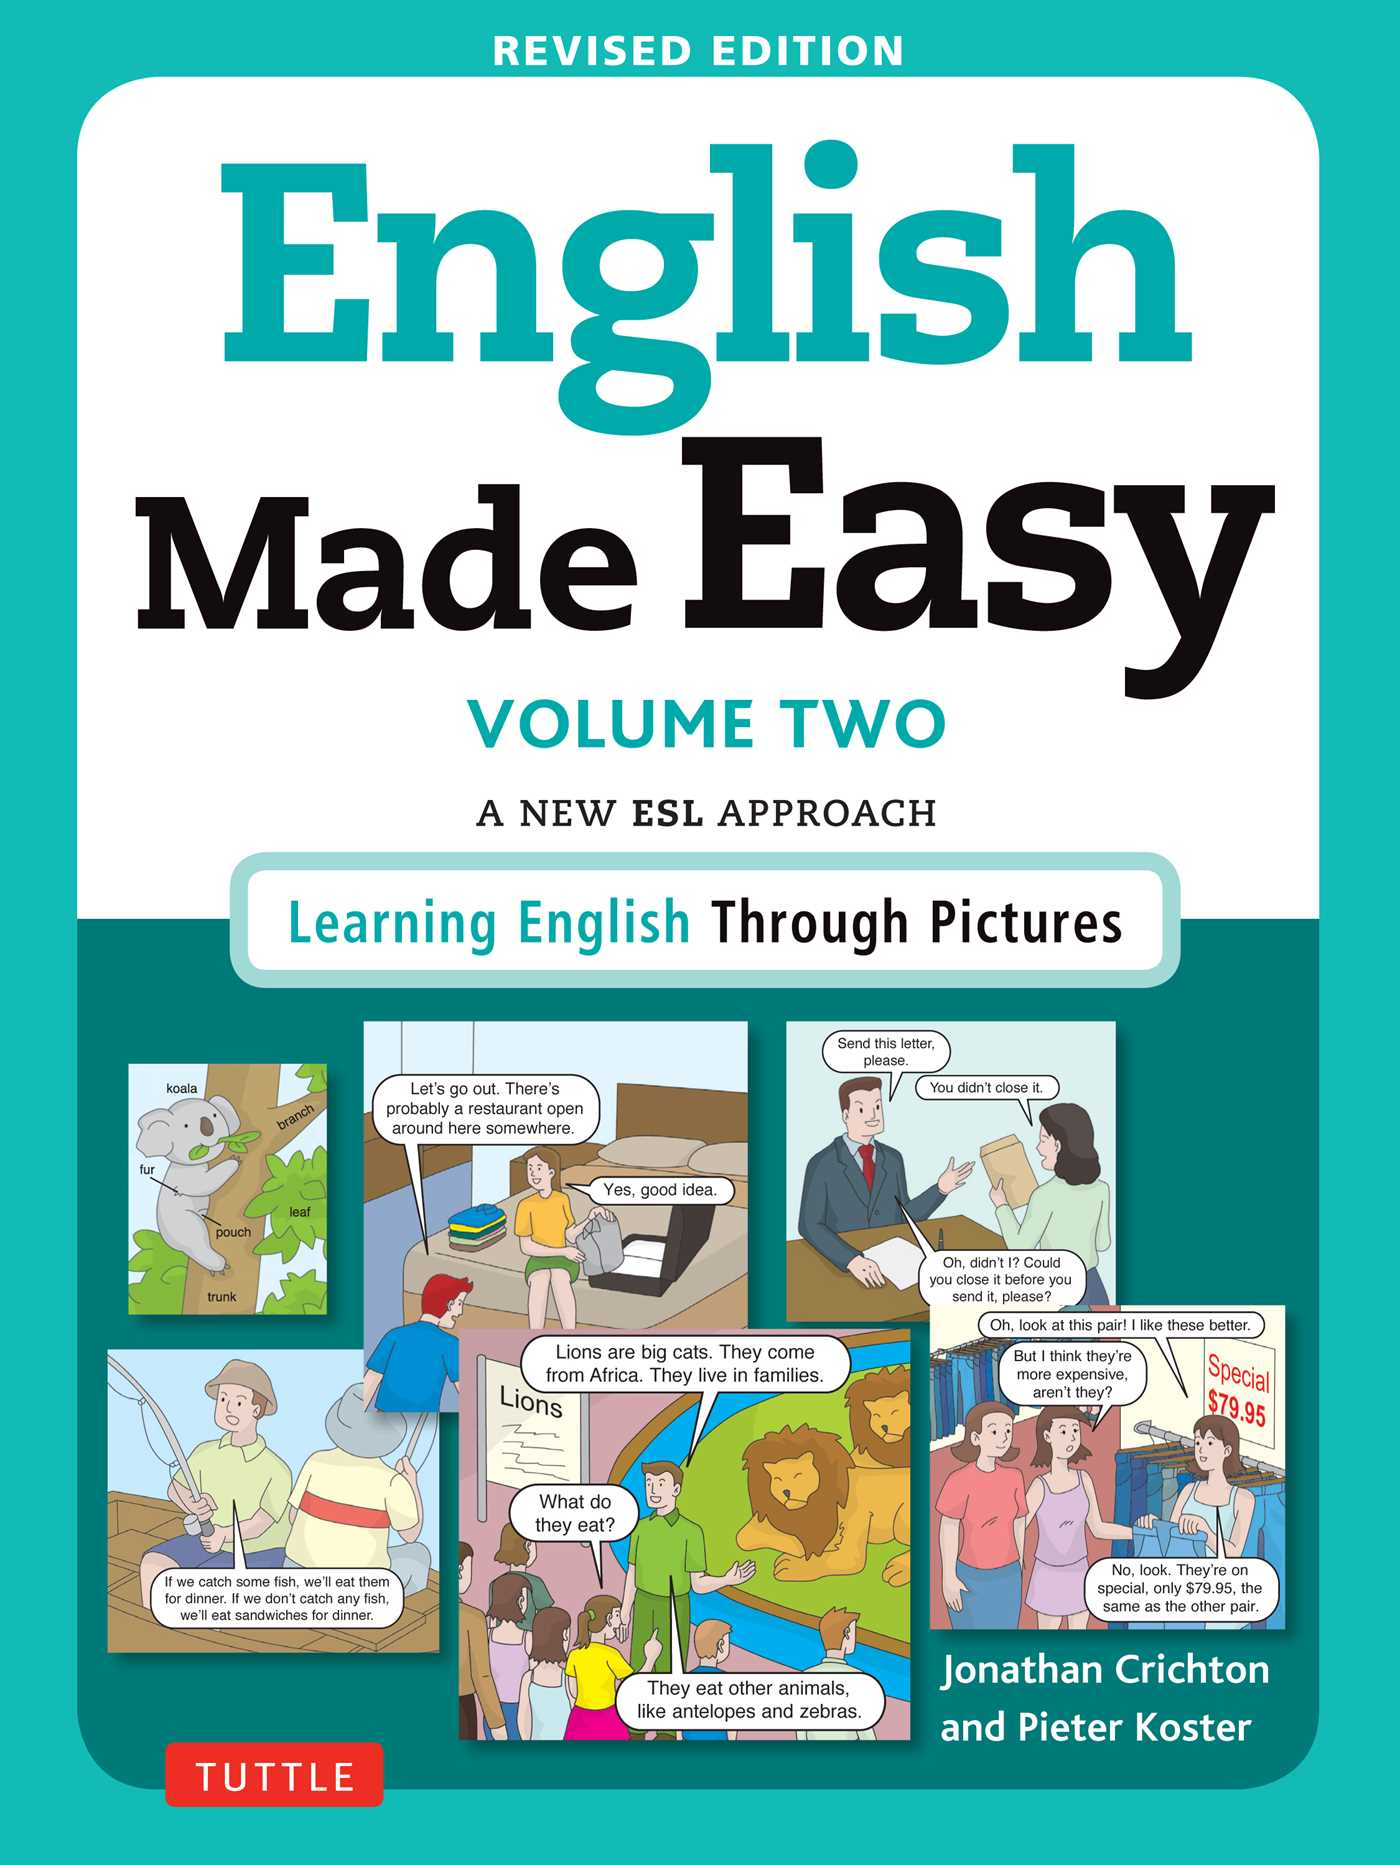 English-made-easy-volume-two-9780804845250_hr